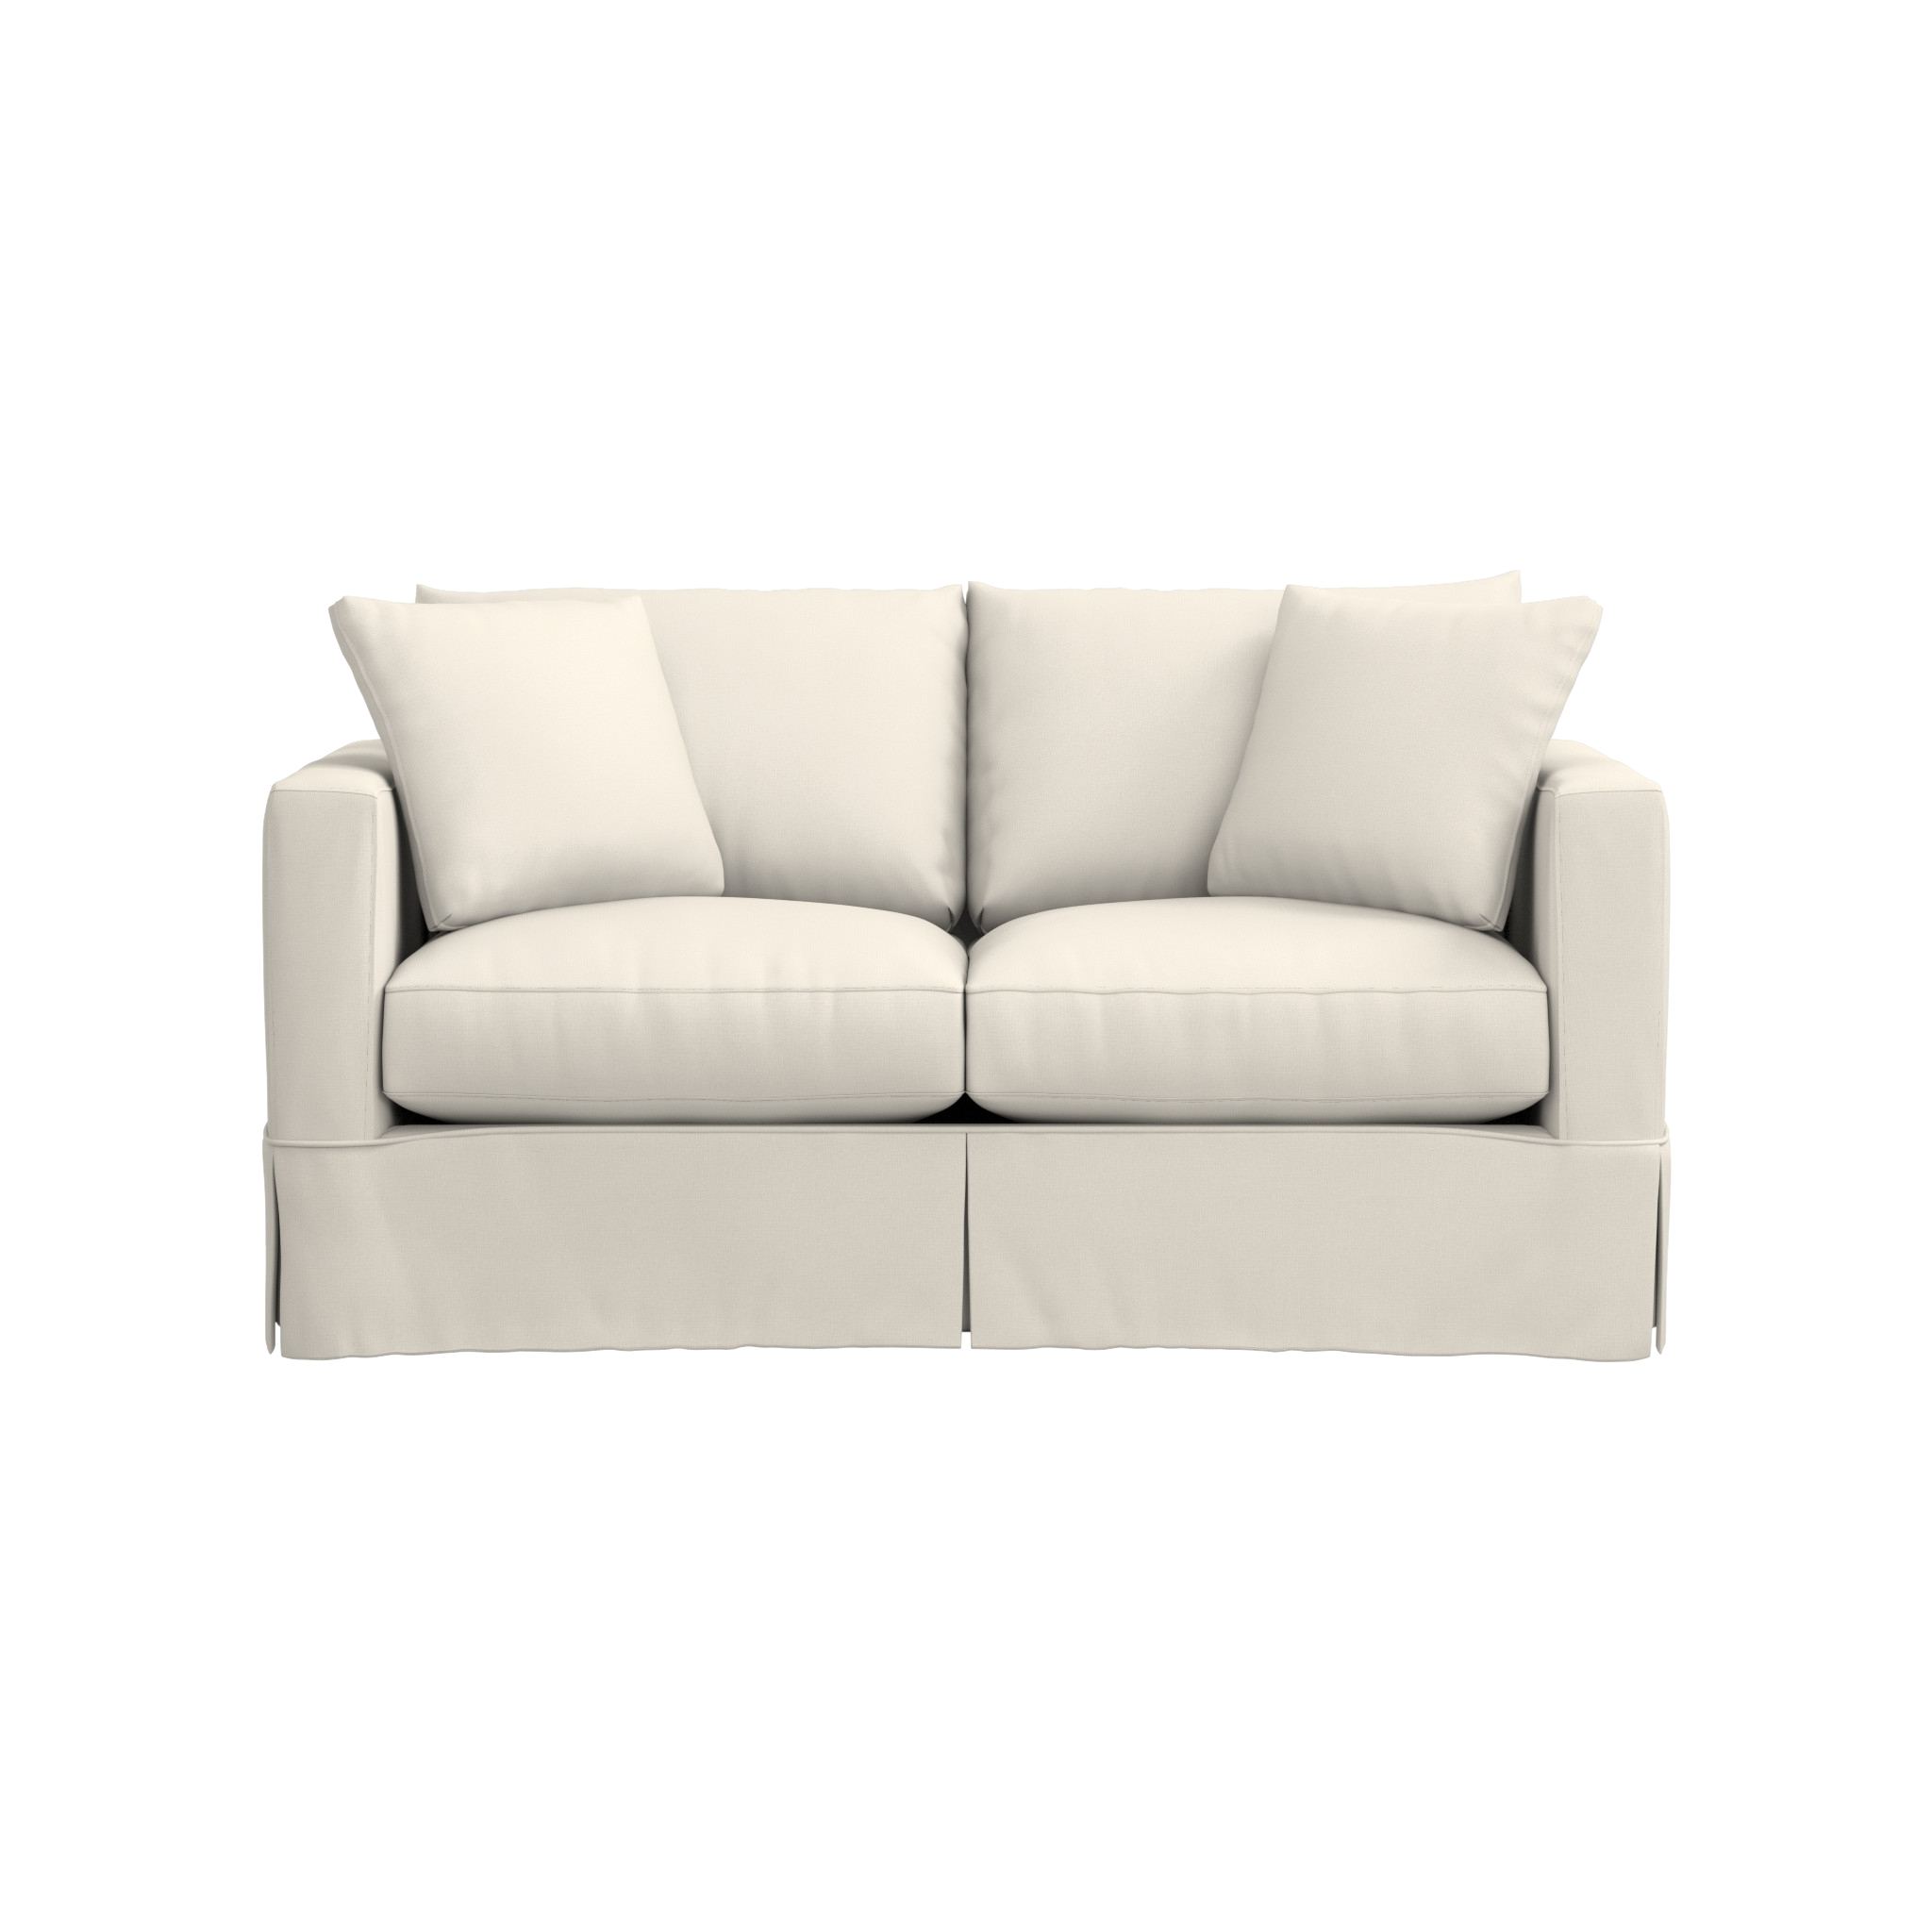 Willow White Couch With Pull Out Bed | Crate And Barrel For Crate And Barrel Sofa Sleepers (Image 20 of 20)